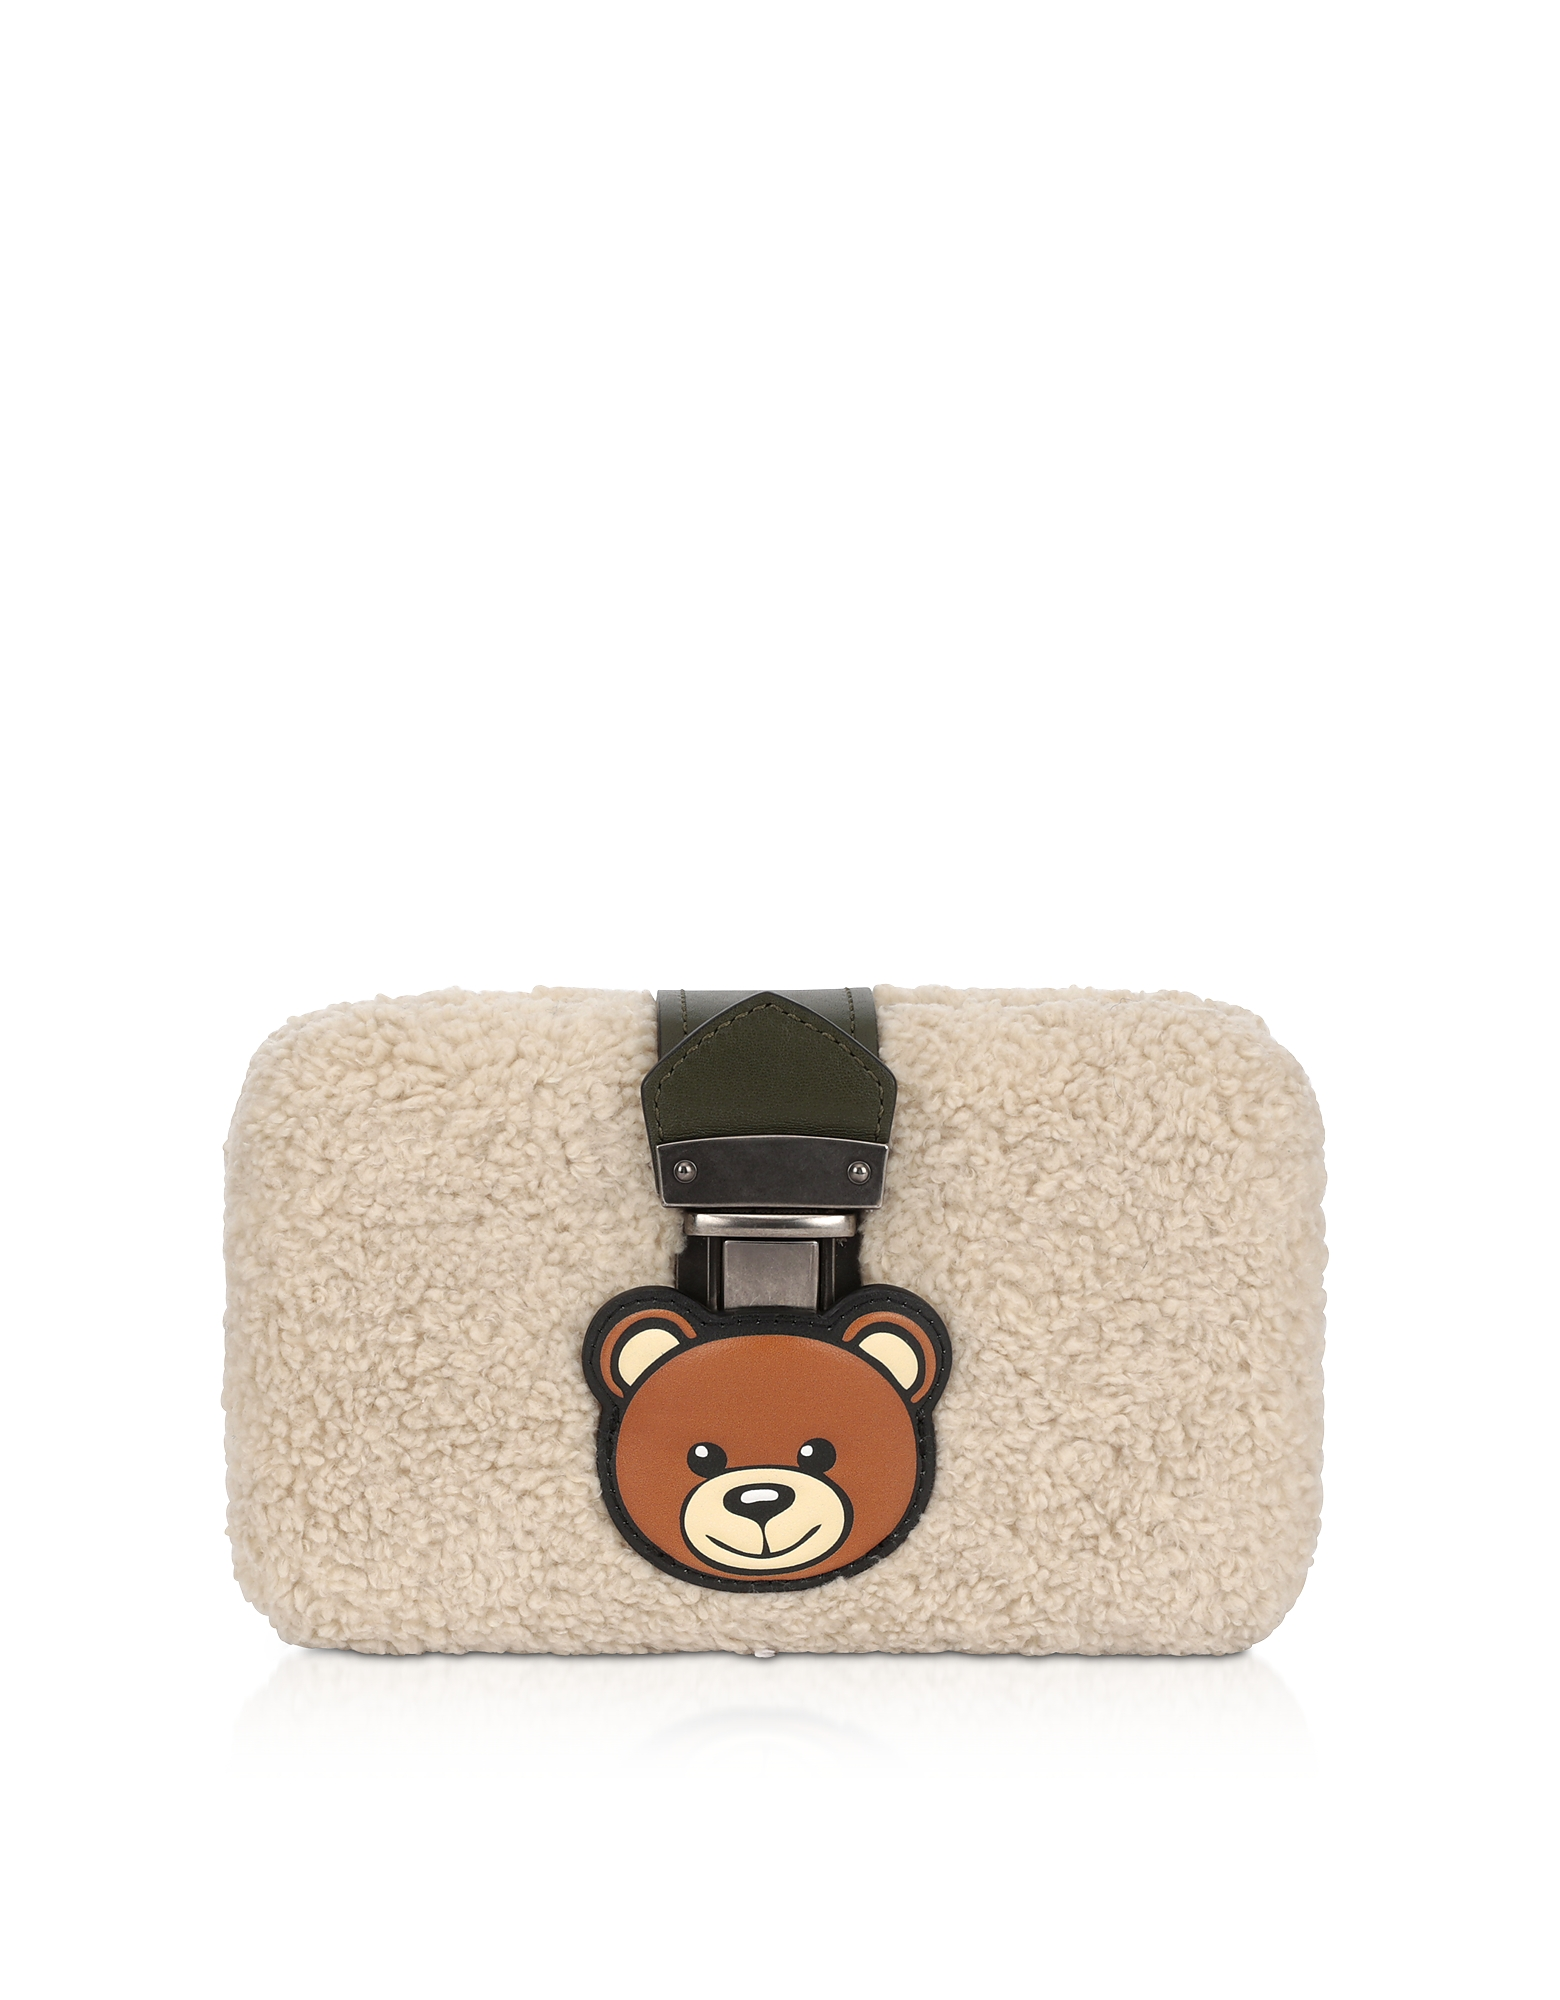 UPC 820771815401 product image for Moschino Designer Handbags, Teddy Bear Eco-Shearling Clutch w/Chain Strap | upcitemdb.com